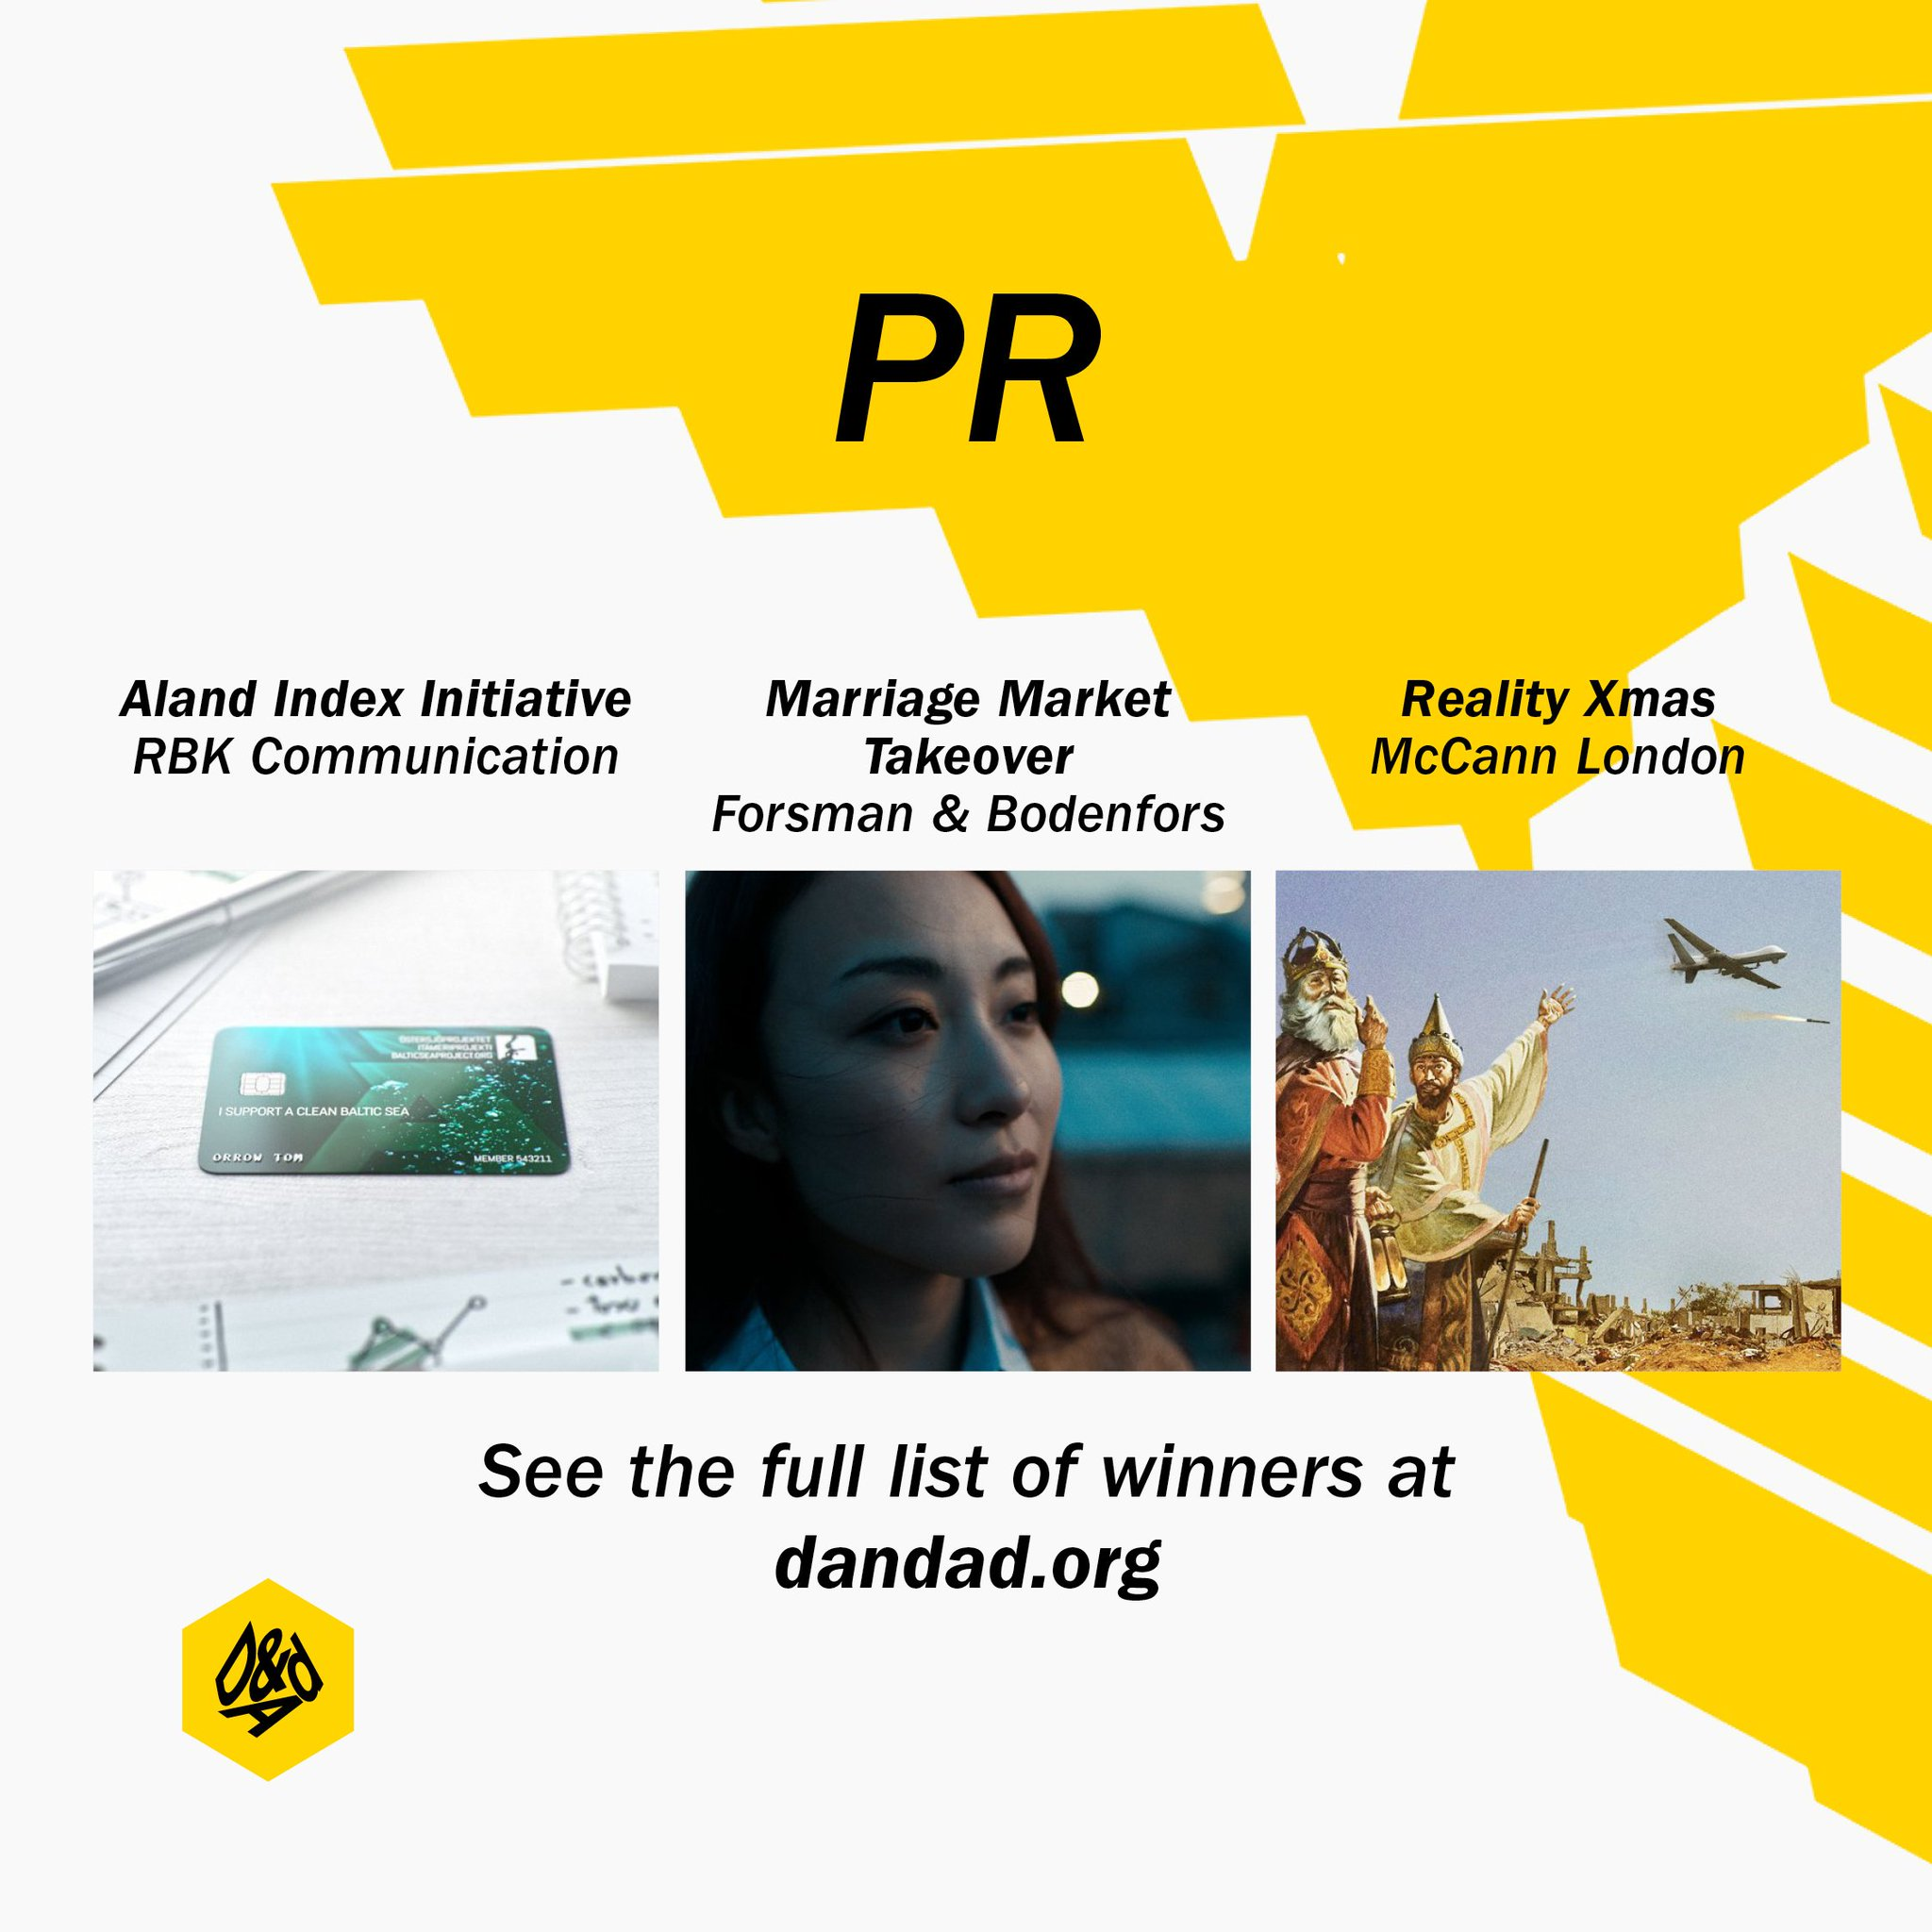 .@ForsBodenfors, @mccannlondon & @RBKcom  join our #DandAD17 #PR winners: https://t.co/1wpA5aVP8c https://t.co/85xrsOyZd6